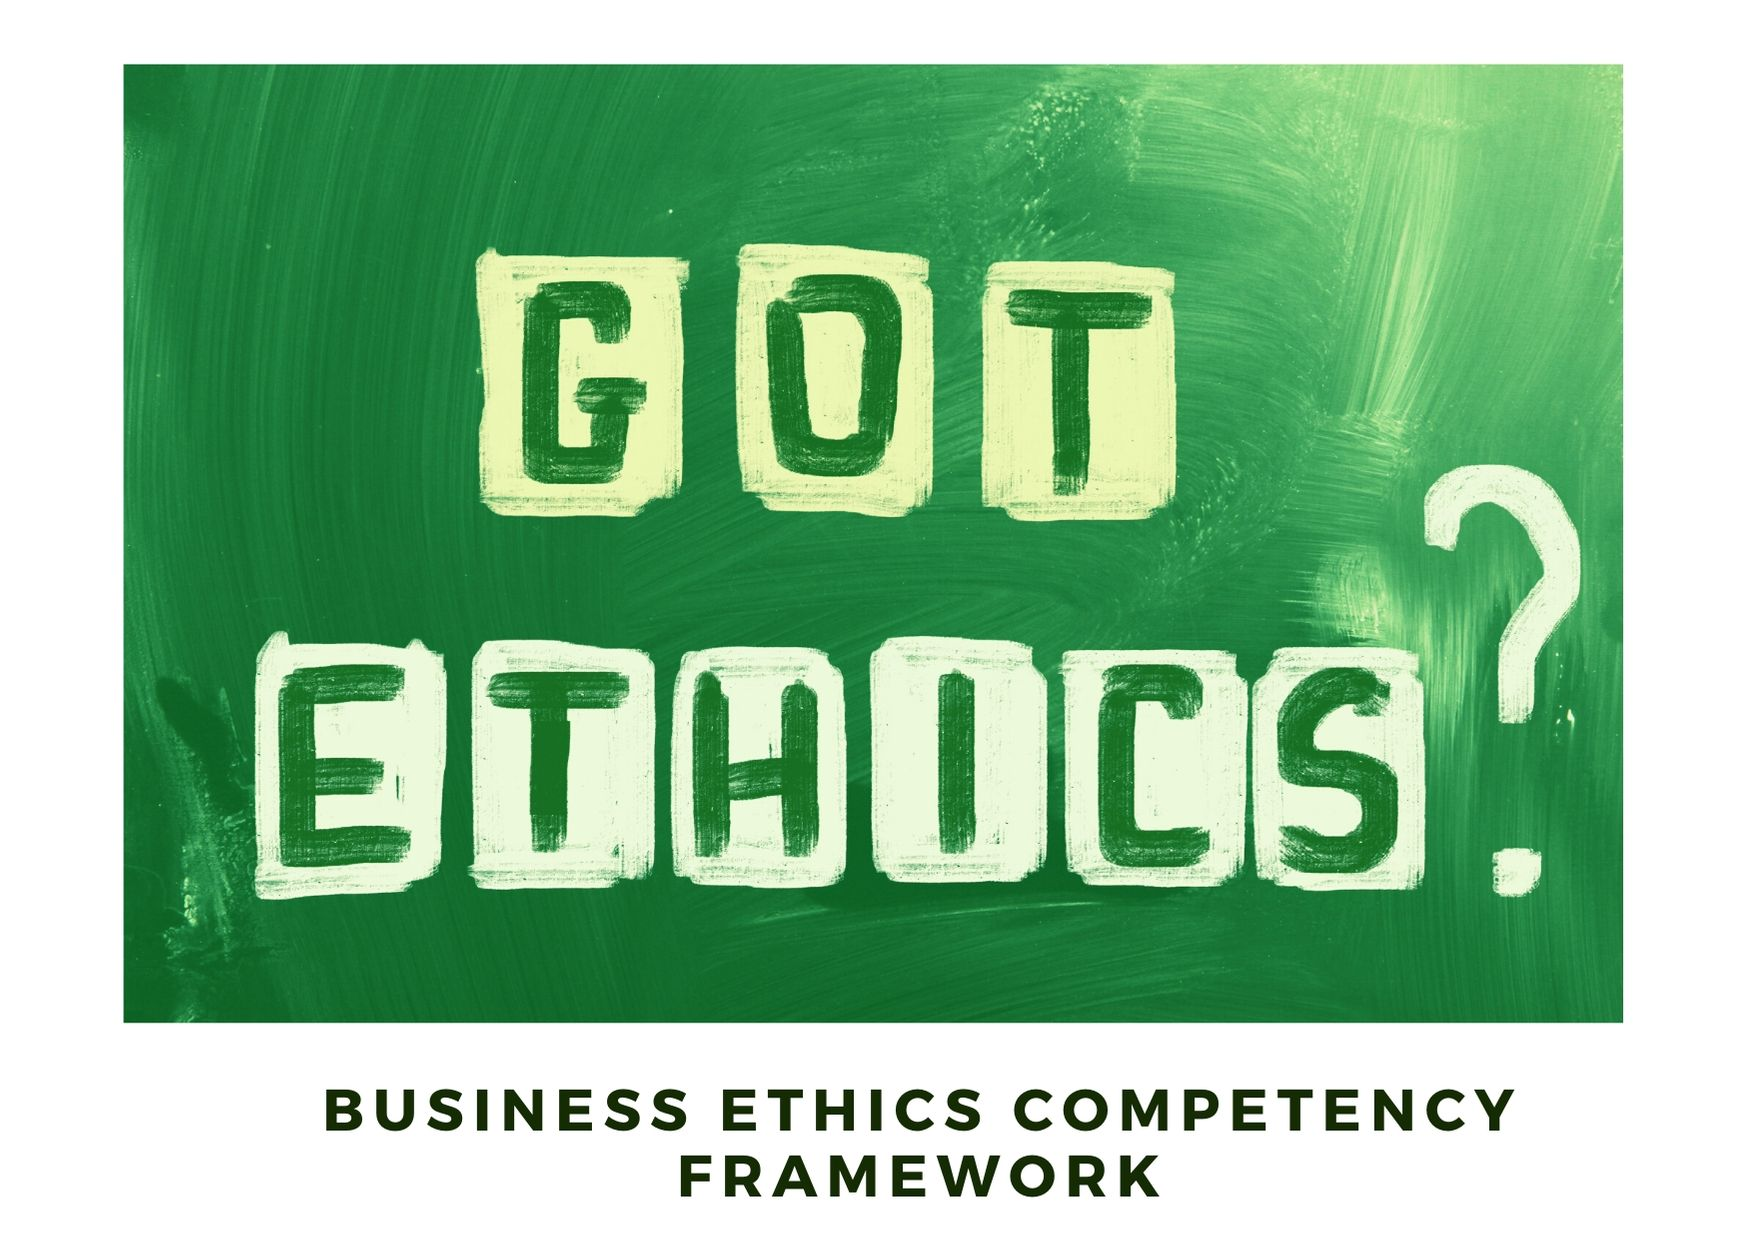 Business Ethics Competency Framework